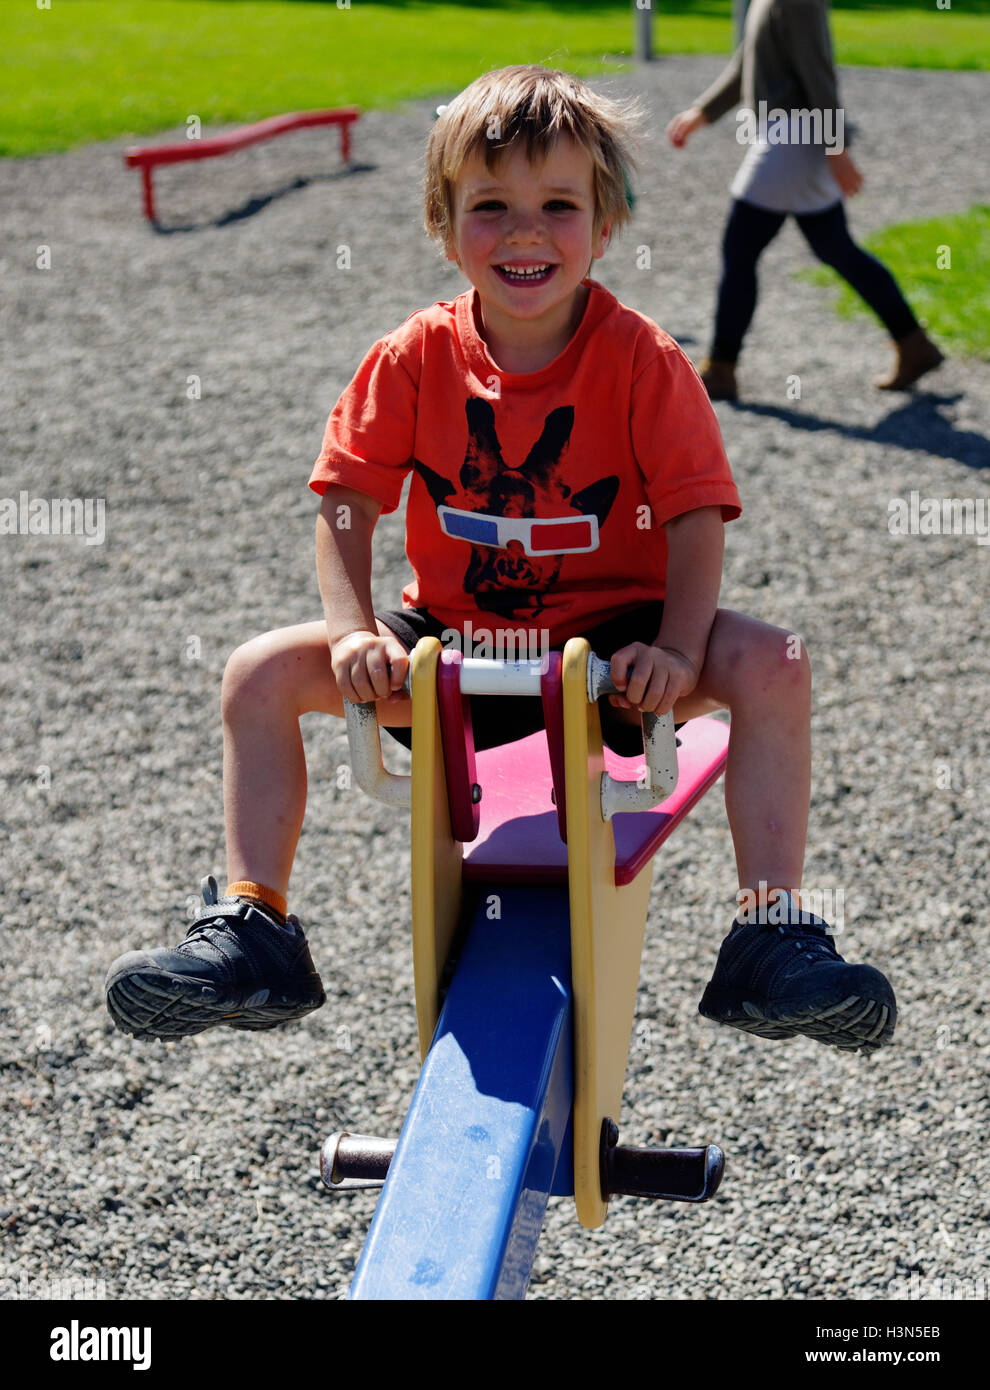 A laughing child (4 yrs old) bouncing on a see-saw - Stock Image